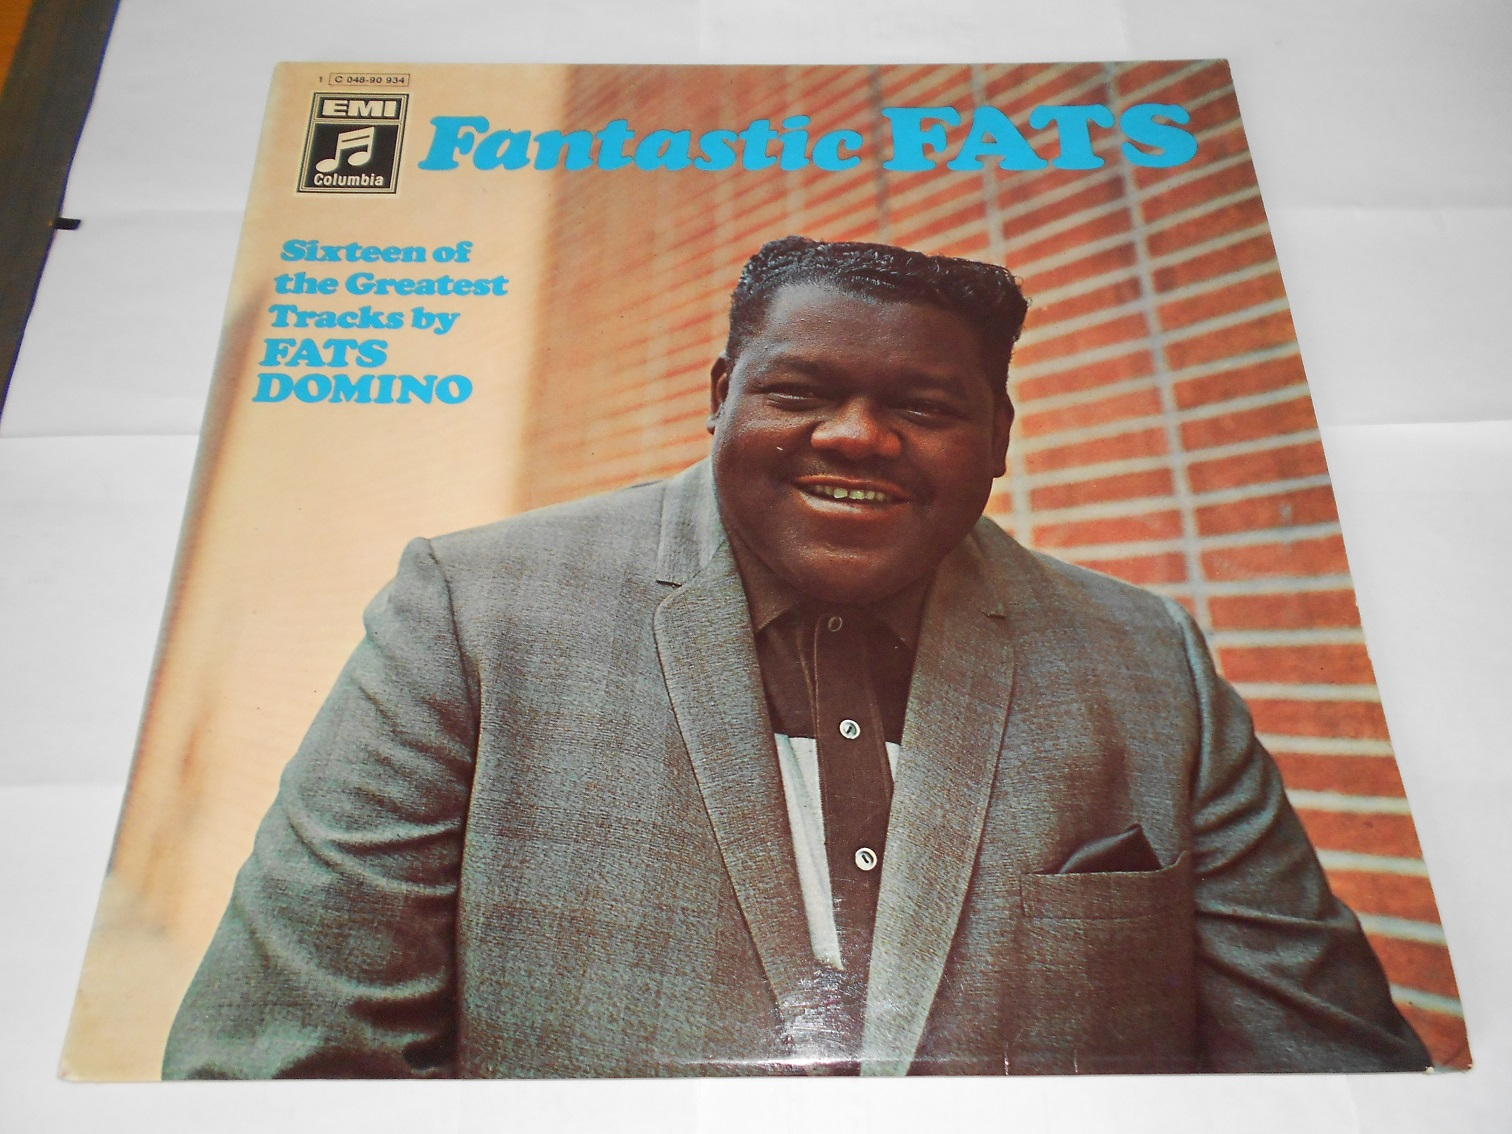 Fats Domino - Fantastic Fats (Sixteen Of The Greatest Tracks By Fats Domino) (LP)